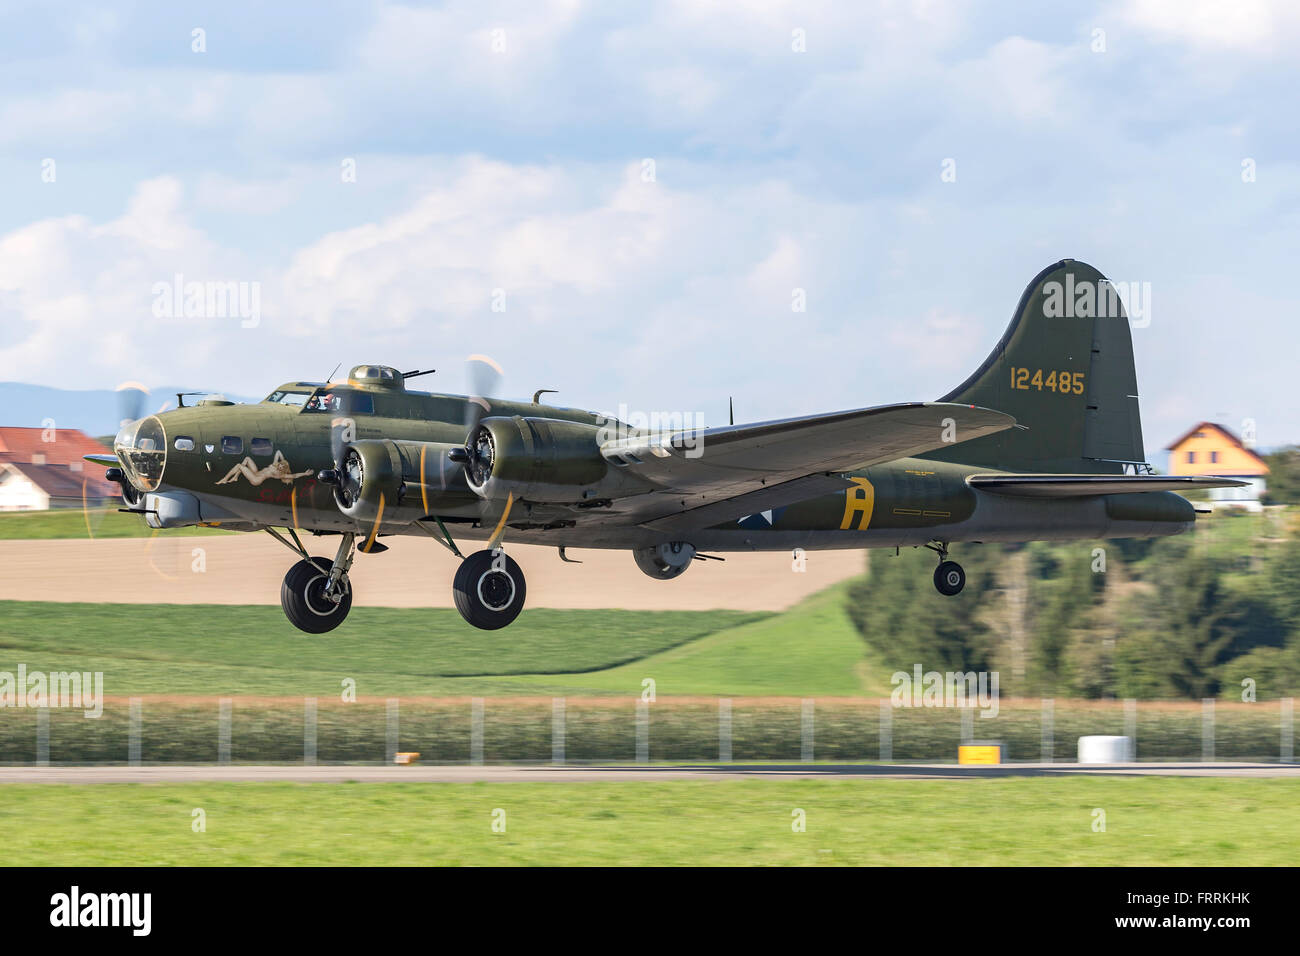 Boeing B-17G 'Flying Fortress' G-BEDF known as 'Sally B' is a Second World War bomber aircraft. Stock Photo